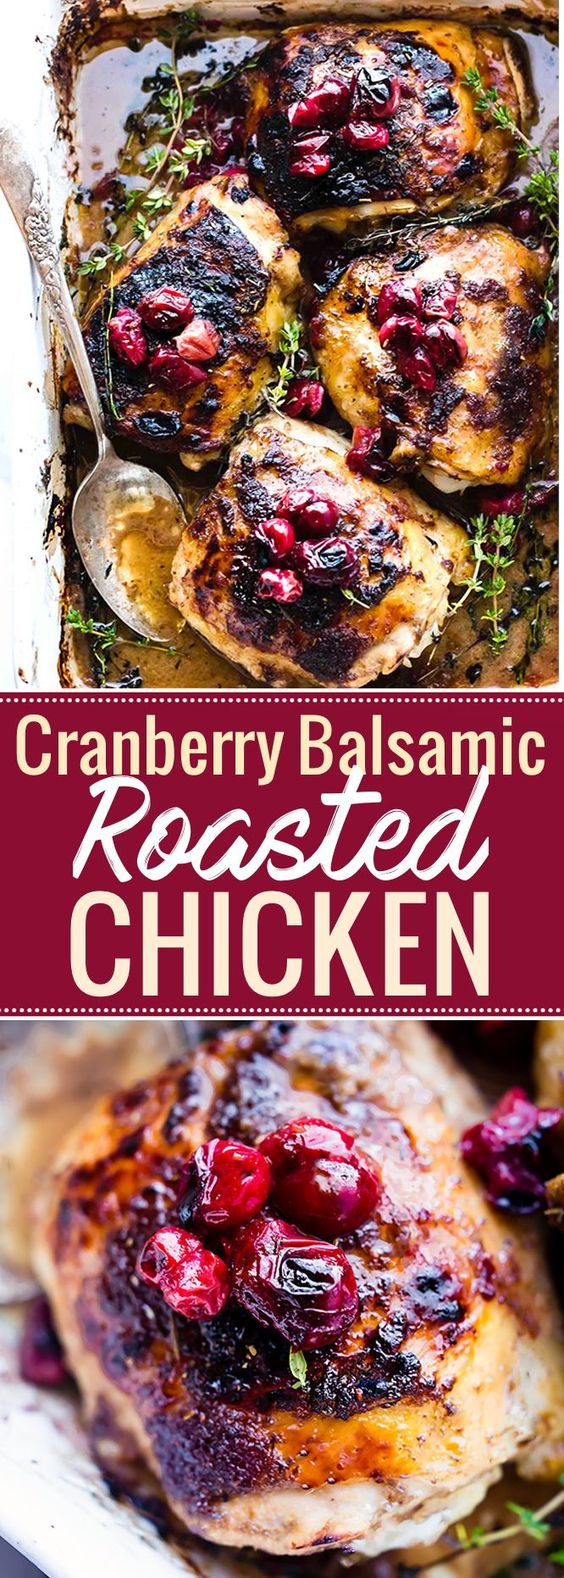 Cranberry Balsamic Roasted Chicken